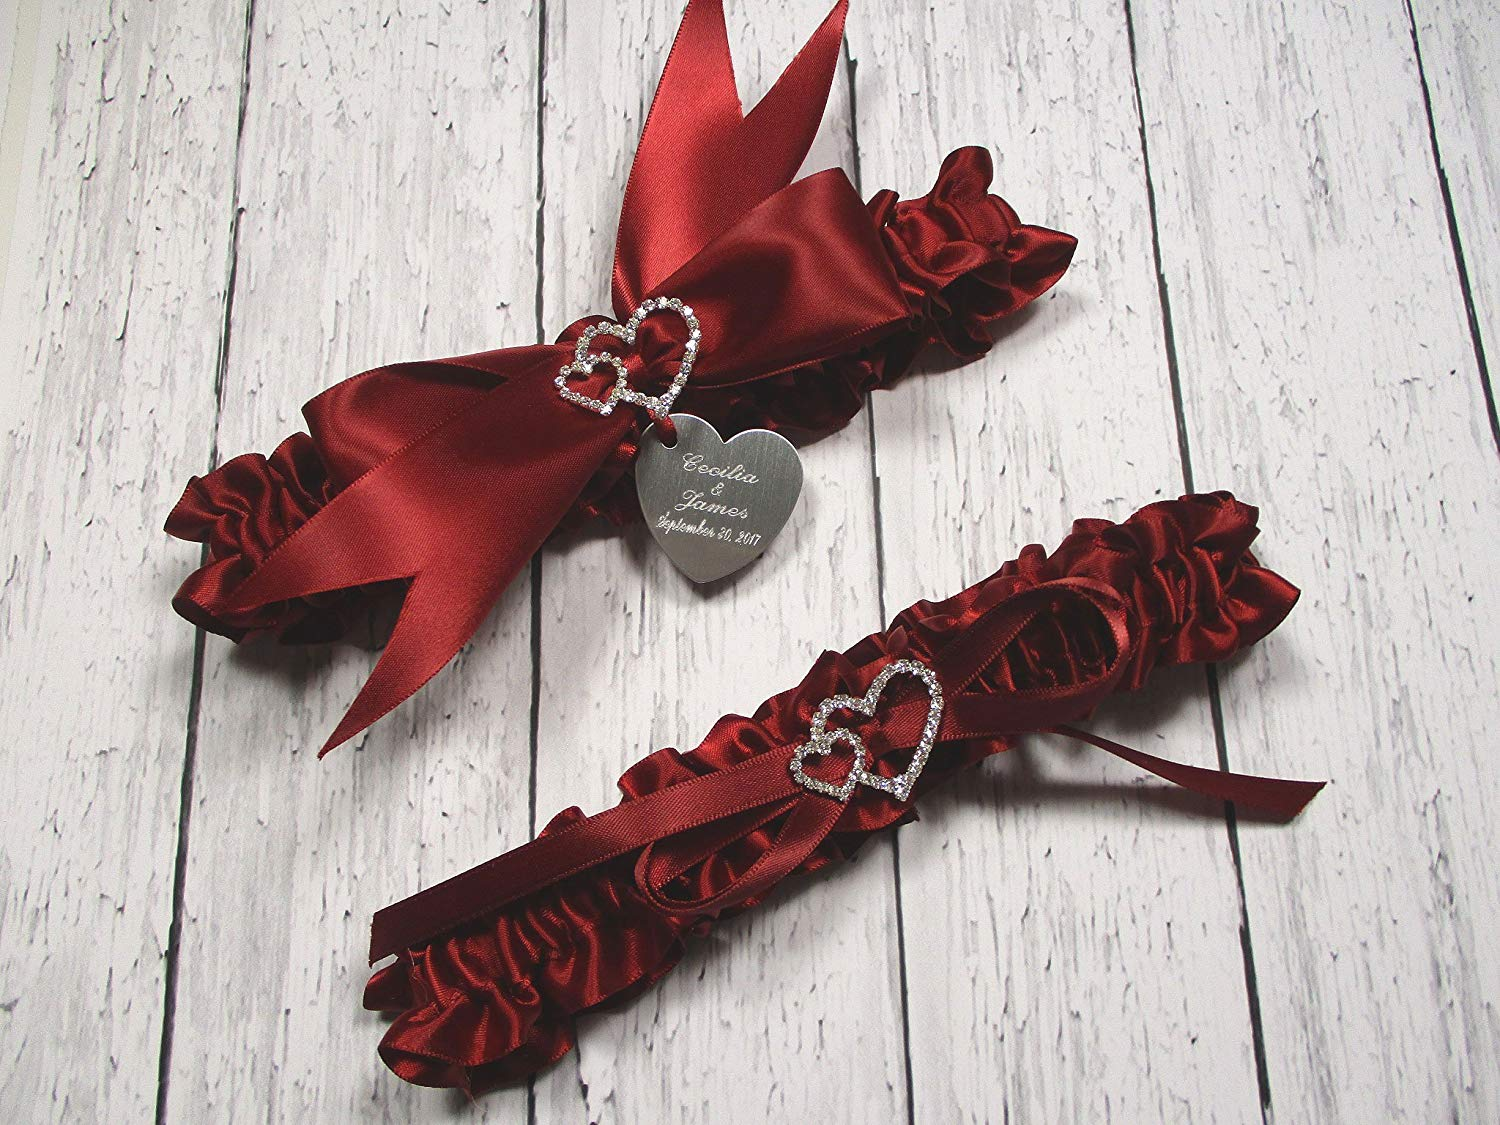 Red Wedding Garter Set in Satin with Linked Hearts and Personalized Engraving